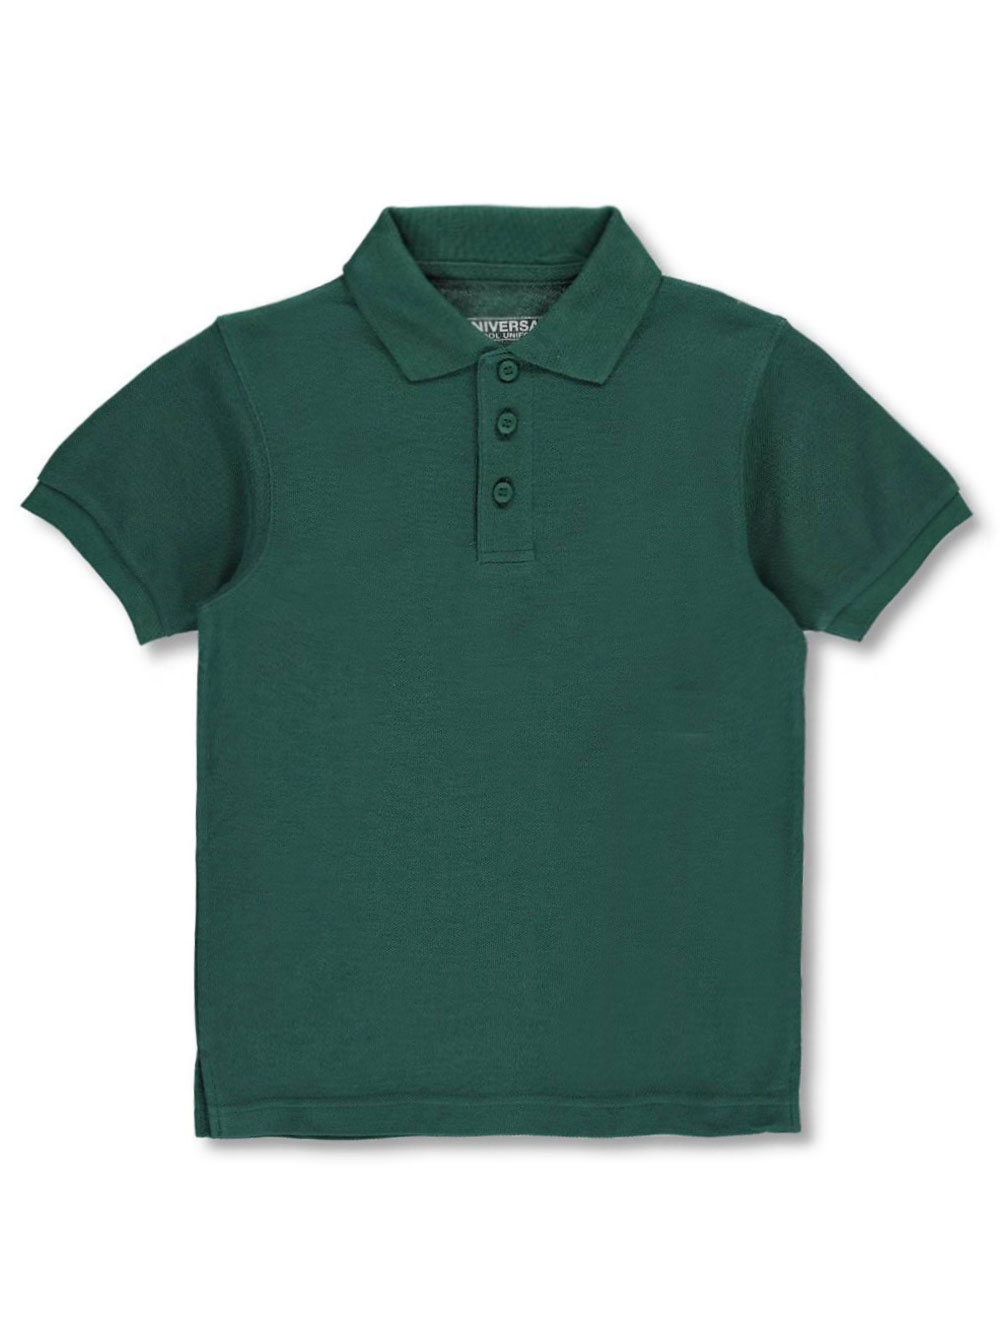 Image of Universal Unisex SS Pique Polo Adult Sizes S  XXL  green l